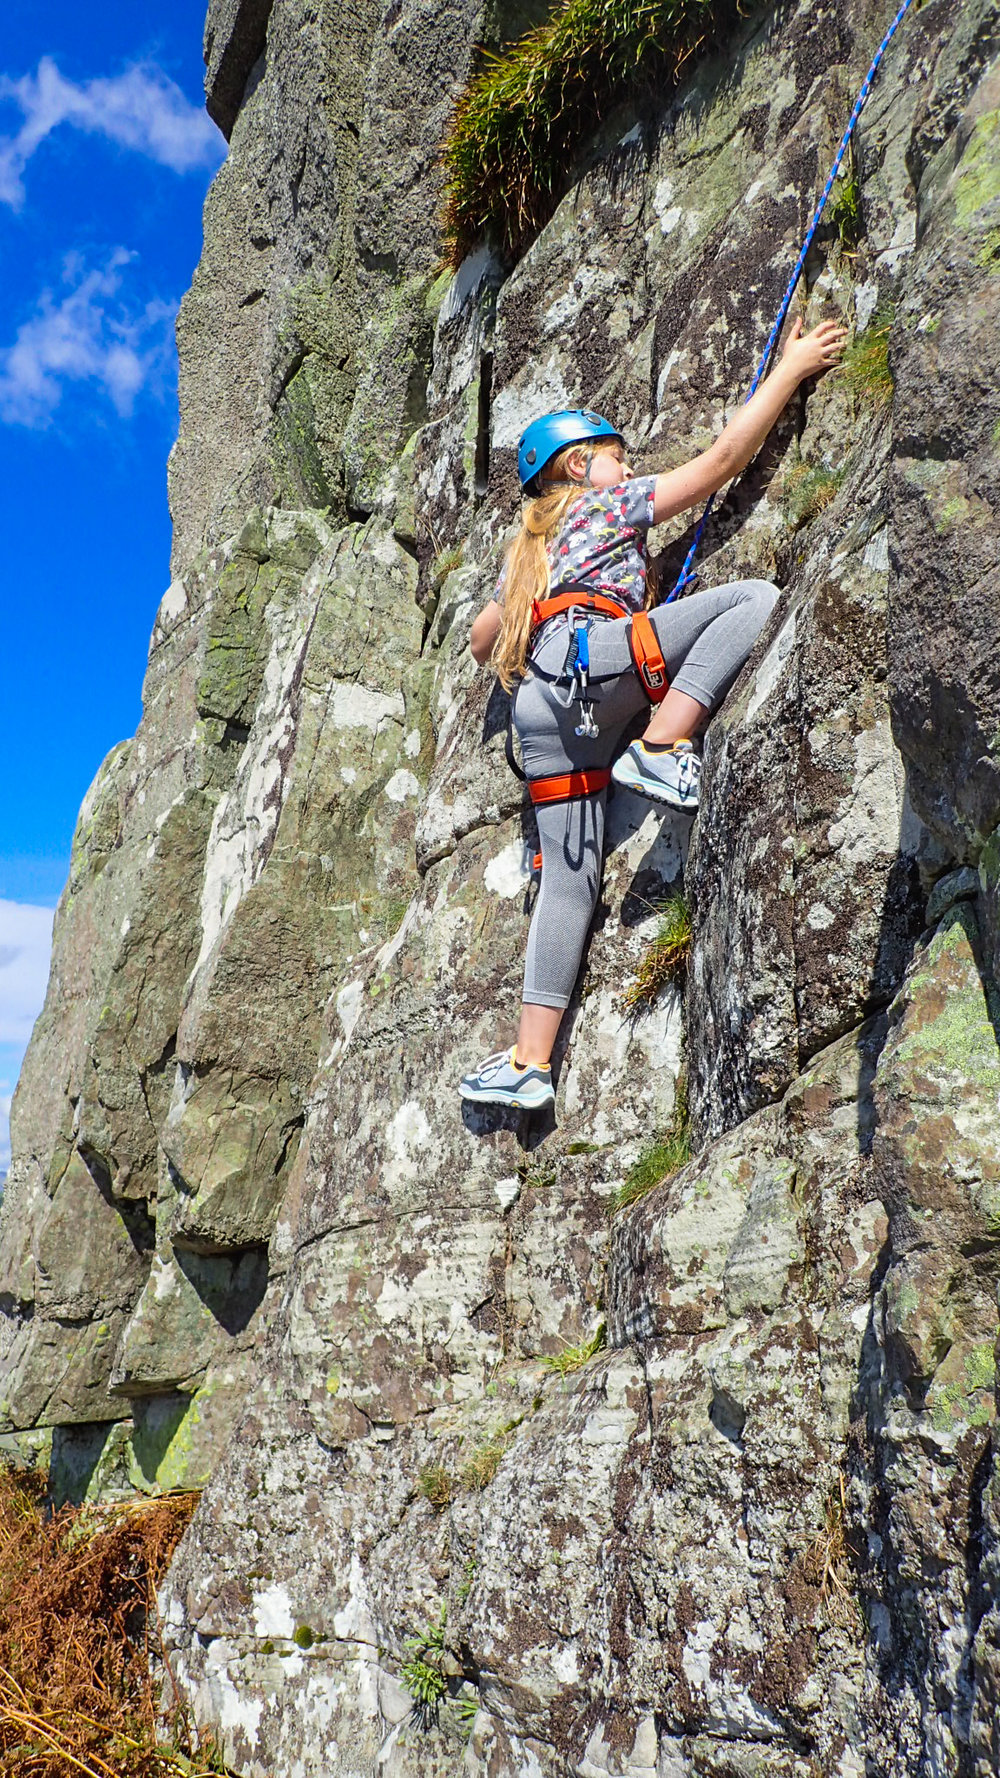 Young people, being healthy, climbing has more value than adventure.